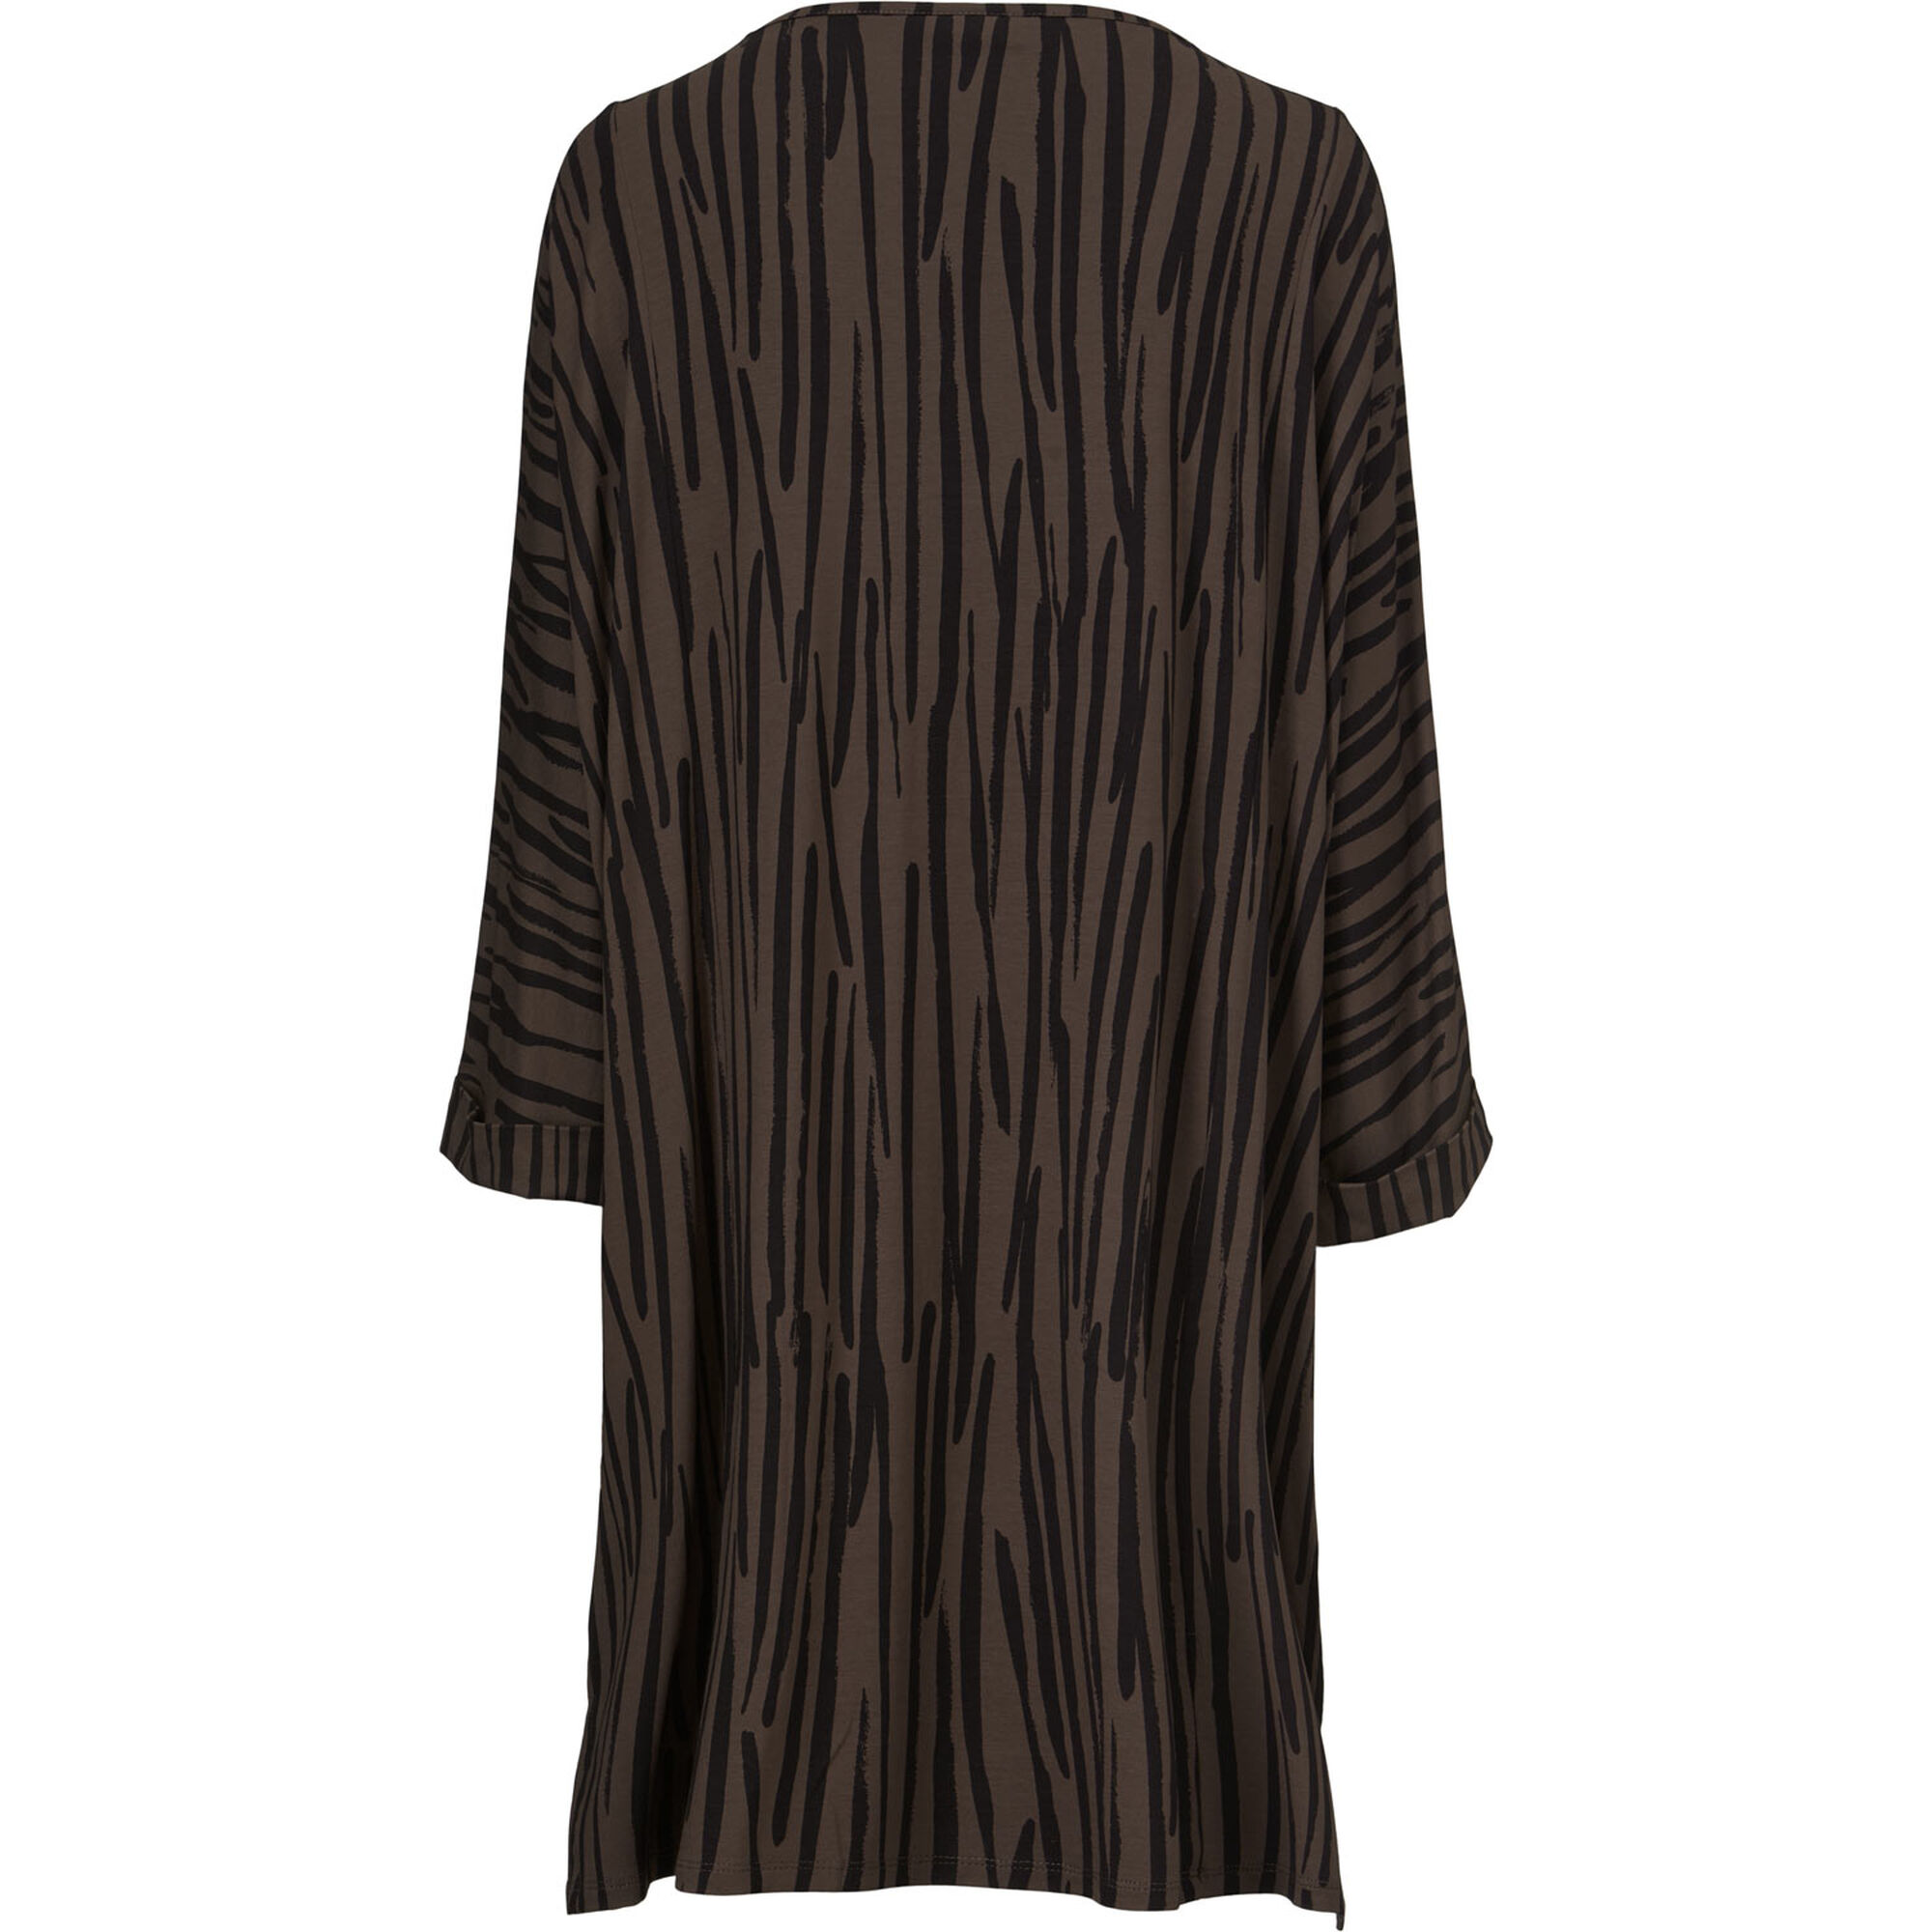 GALENY TUNIC, Chocolate, hi-res